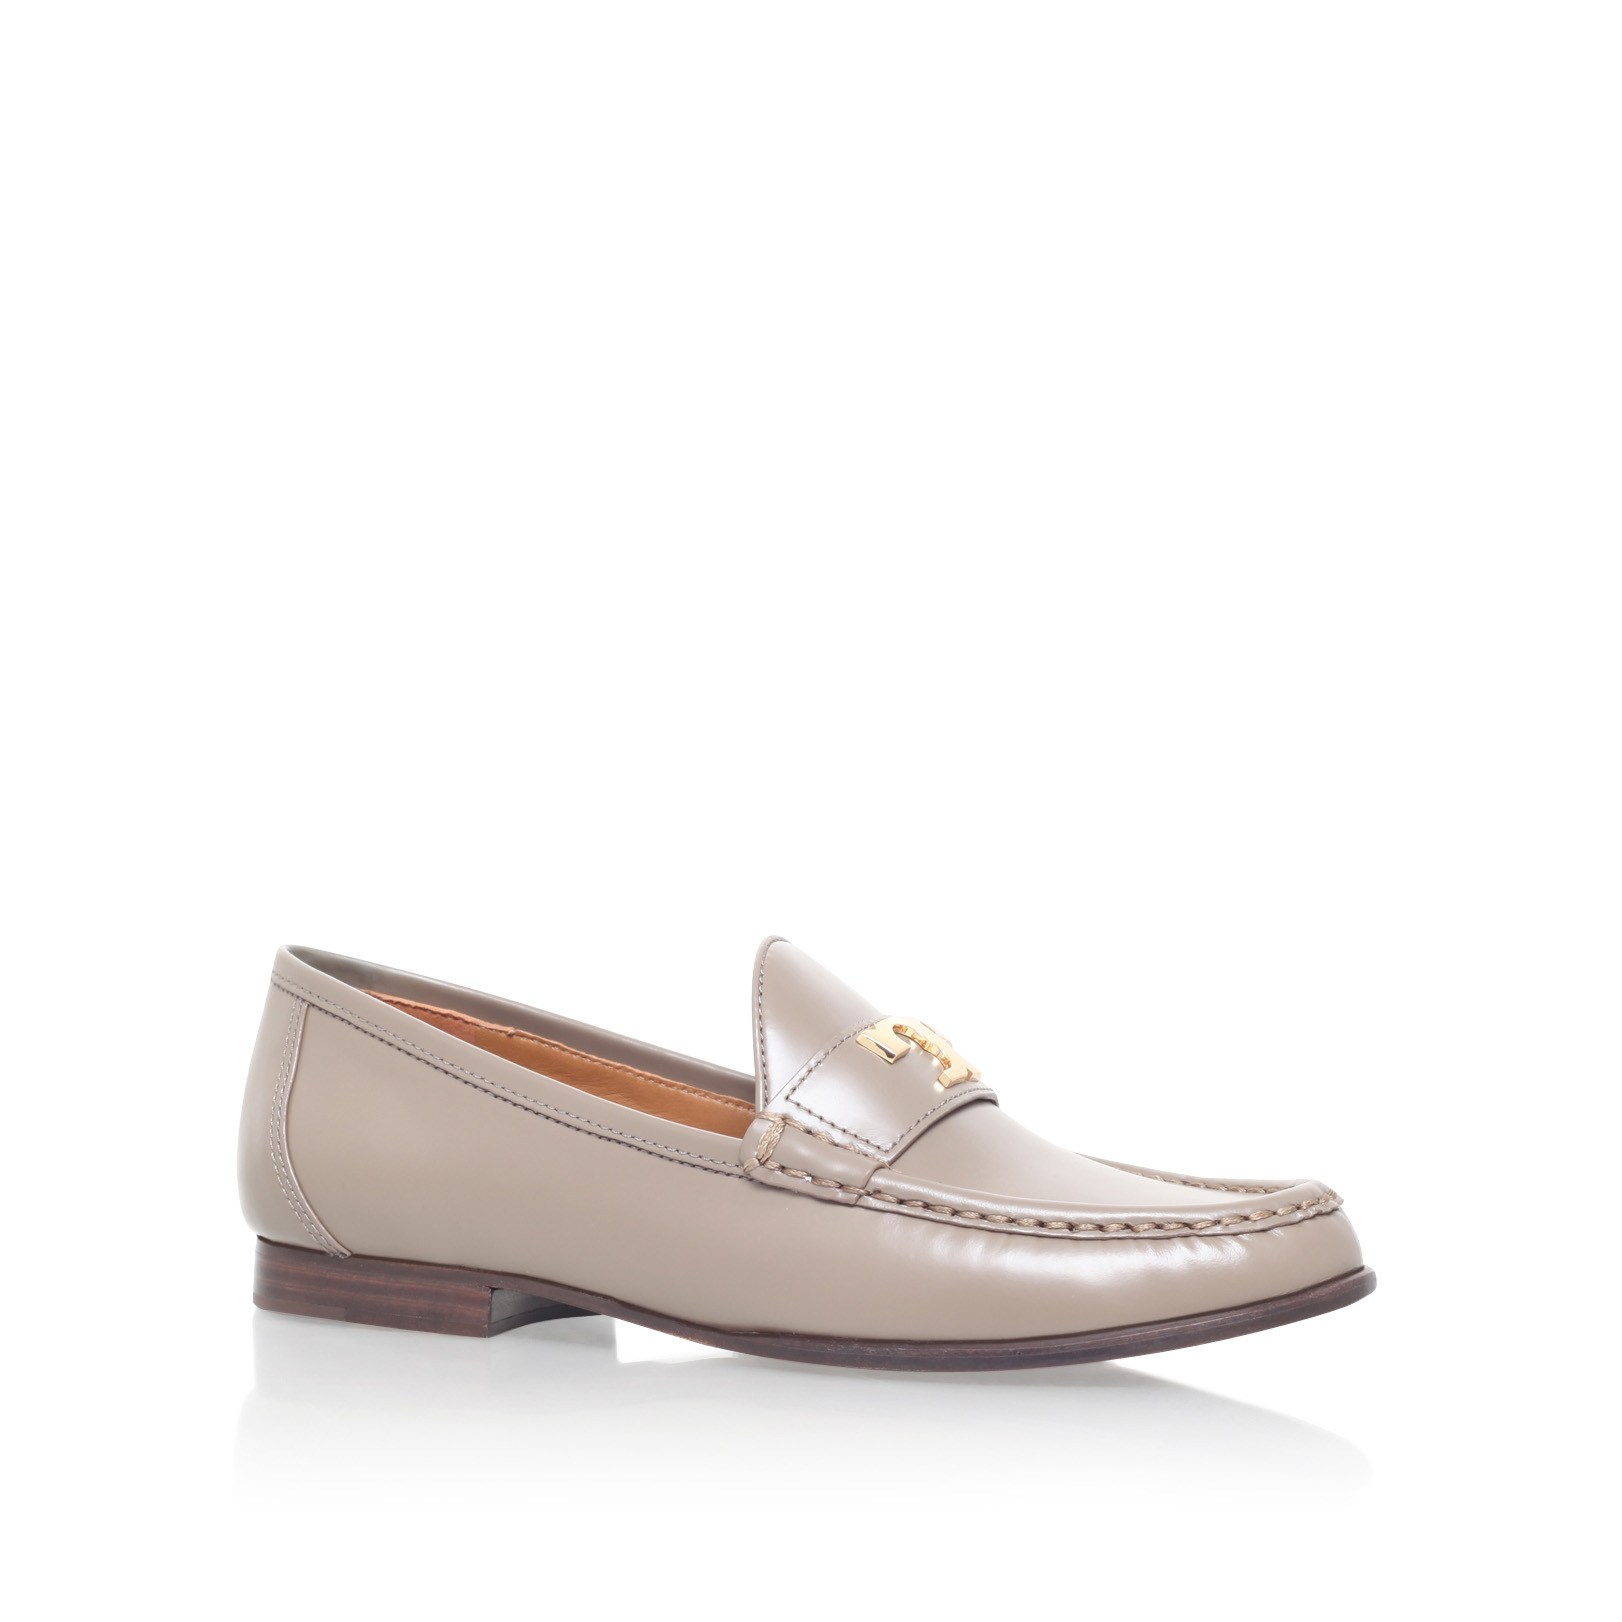 TOWNSEND LOAFER